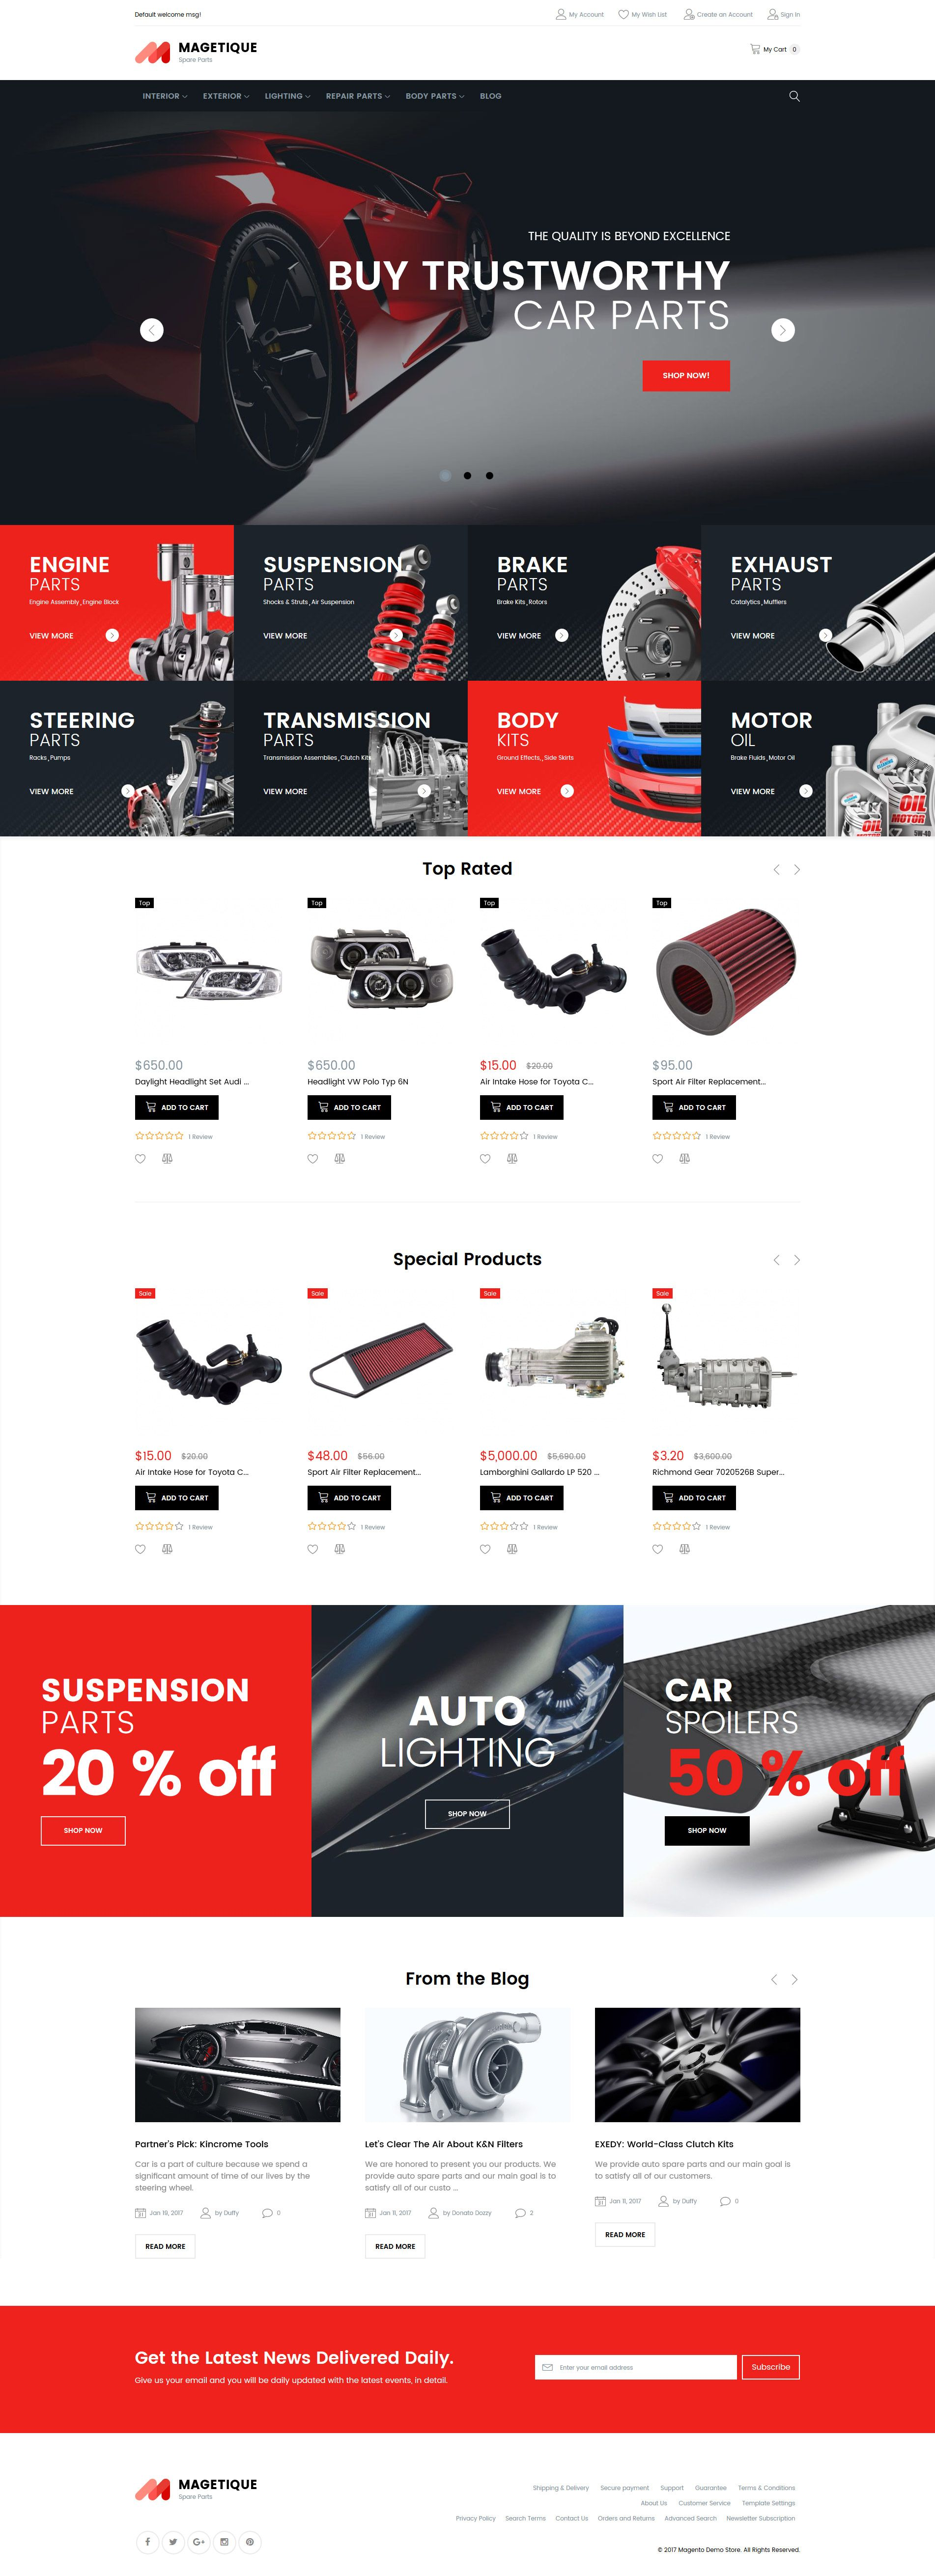 Magetique - Spare parts | Cars, Website and Template